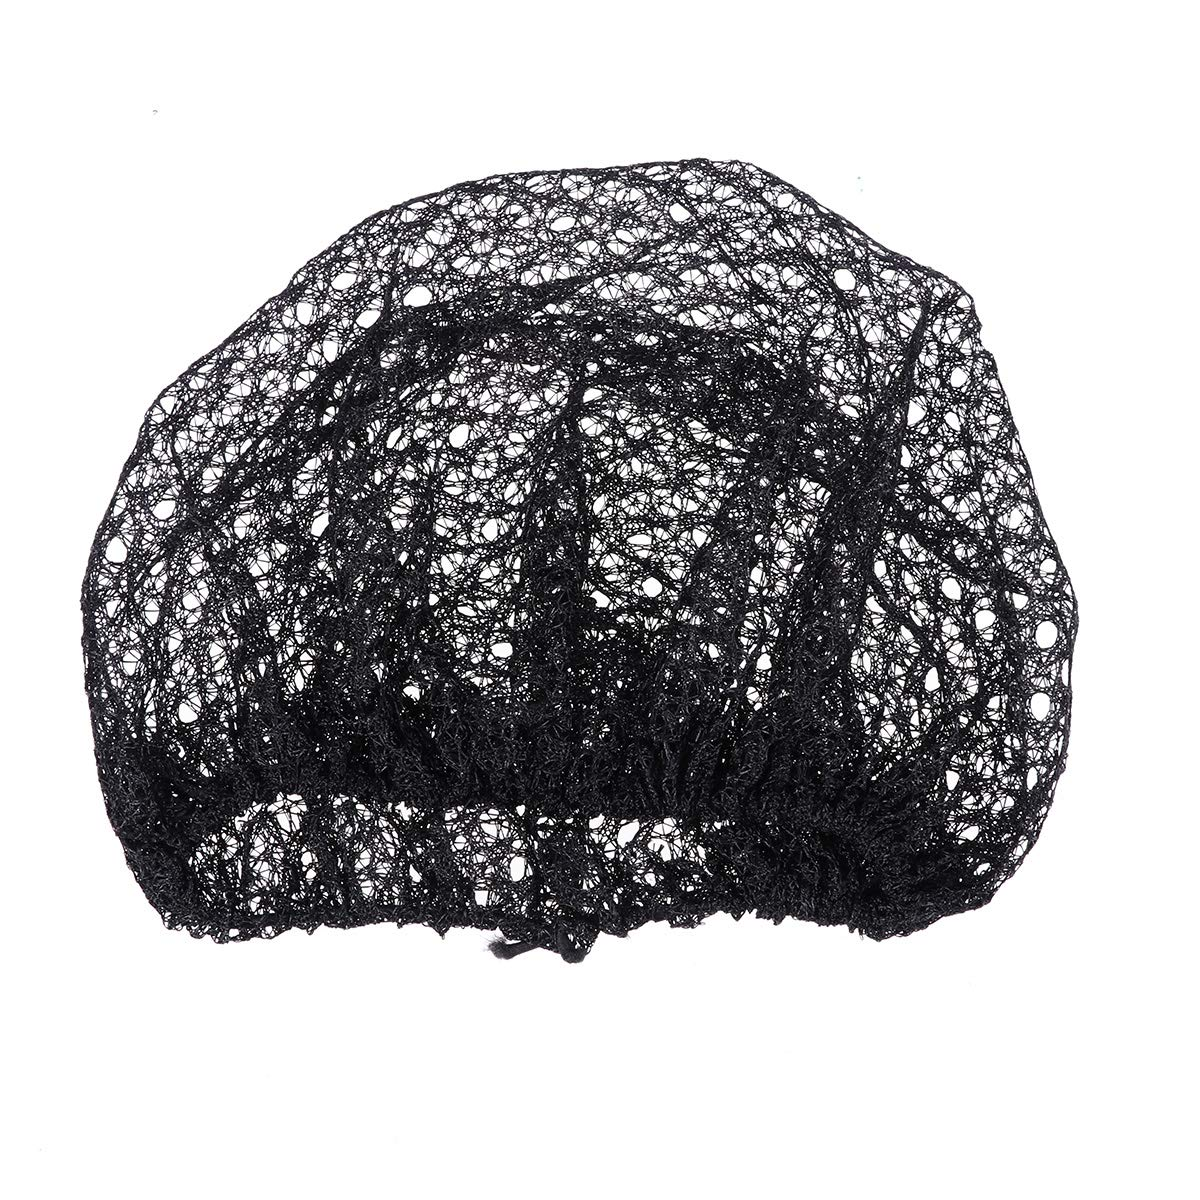 Lurrose 12Pcs Hair Net Elastic Mesh Caps Head Covers Free Size for Cosmetics Kitchen Cooking